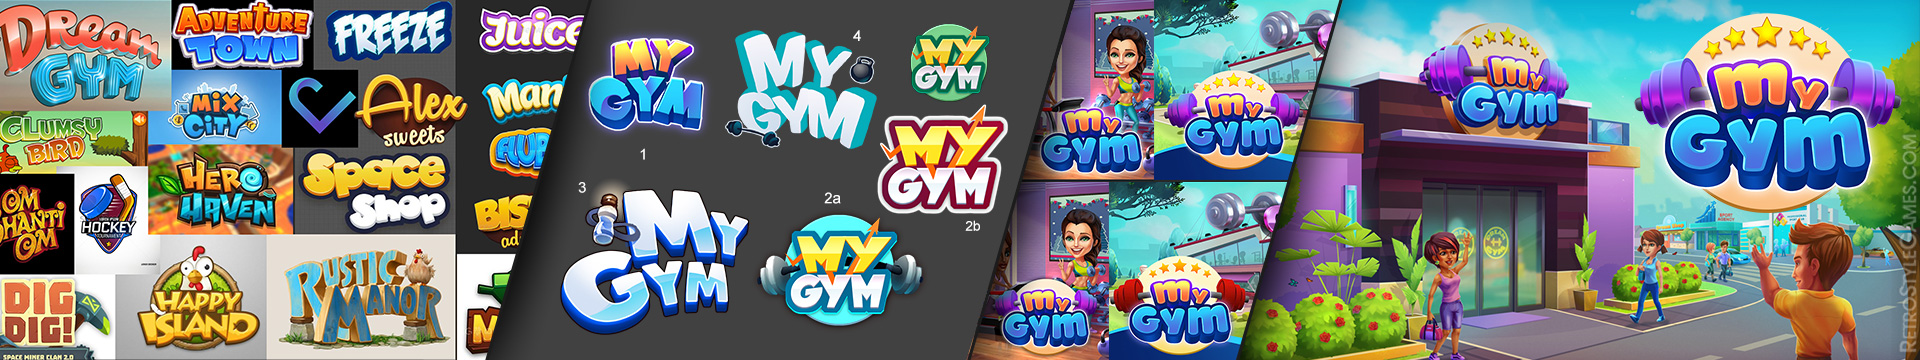 Gaming Logo Concept Ref Draft Variant WIP My Gym